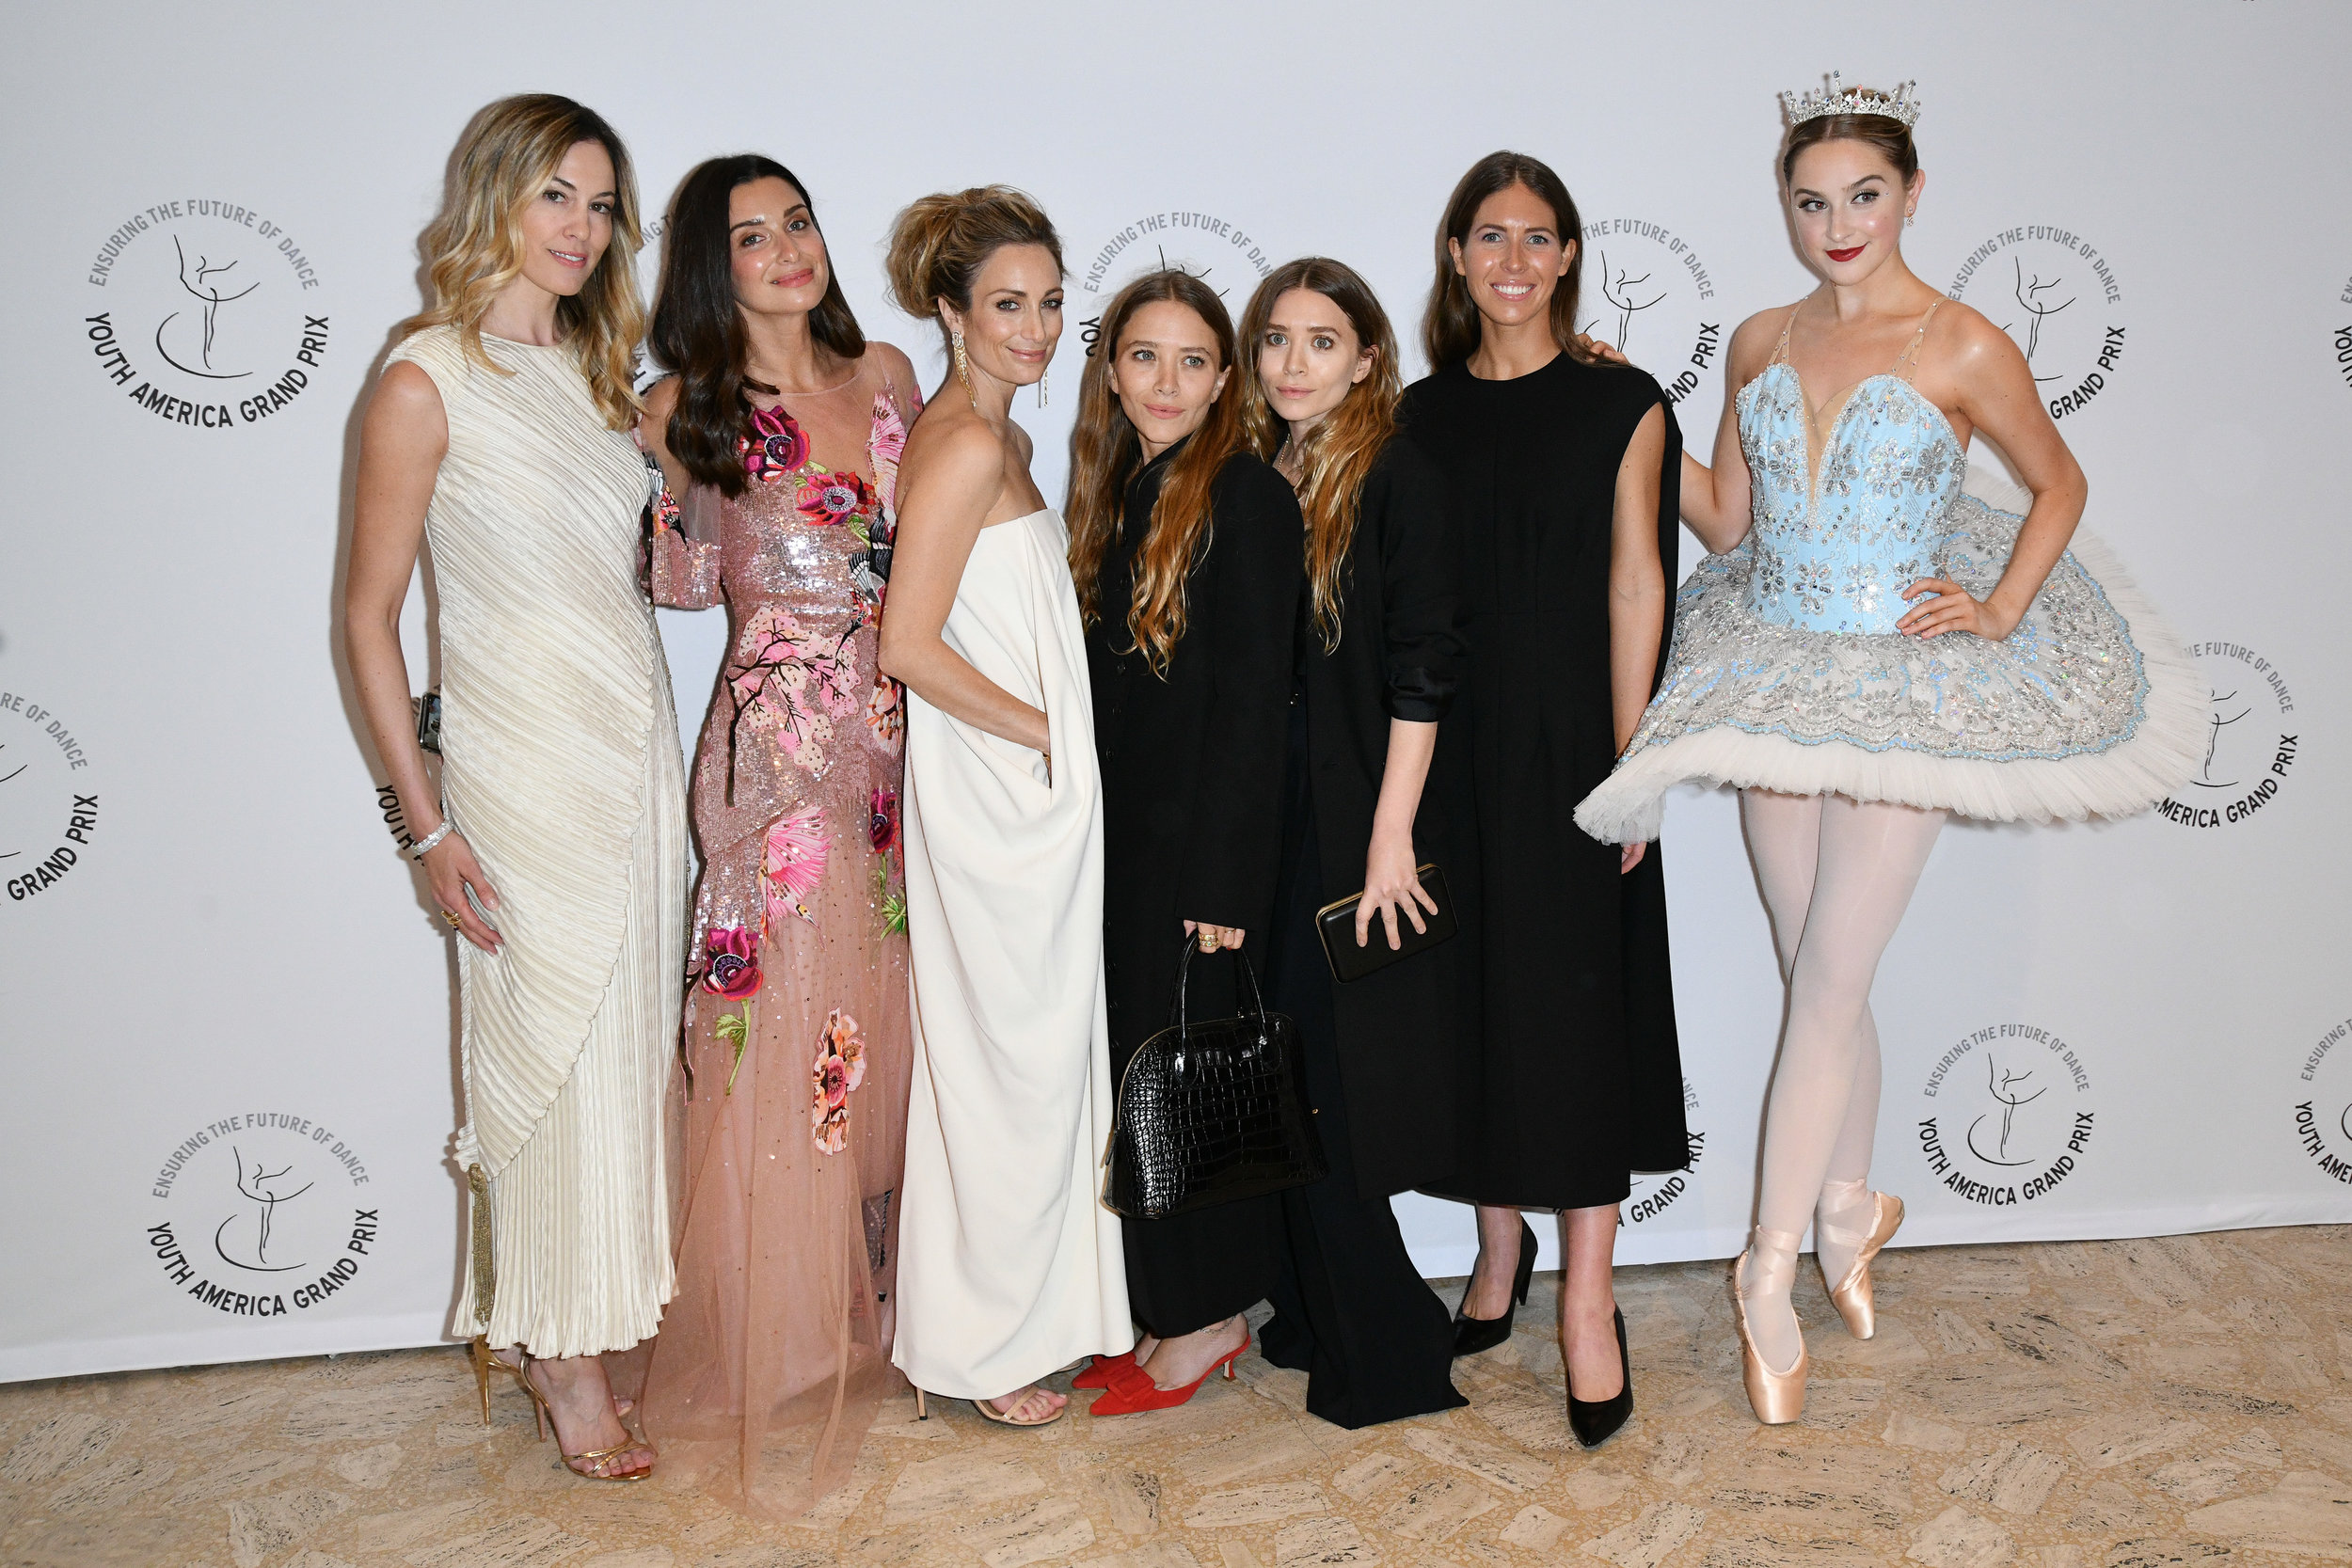 Lesley Thompson Vecsler, Candice Miller, Marcella Guarino, Mary-Kate Olsen, Ashley Olsen, Colby Mugrabi, YAGP Participant Christy Lyn.jpg